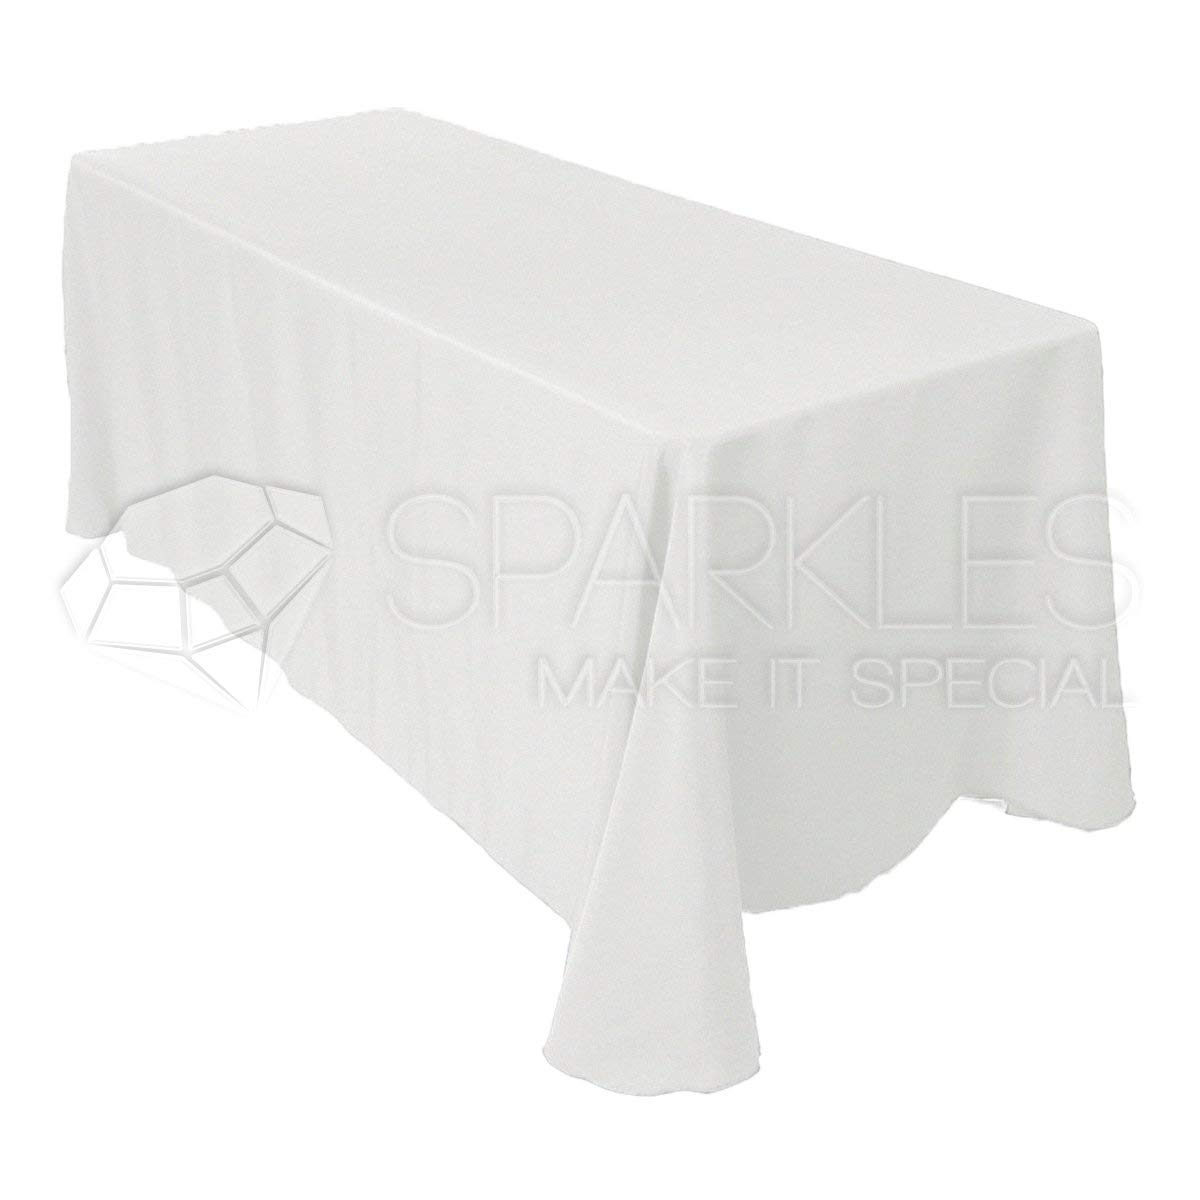 "Sparkles Make It Special 10-pcs 90"" x 132"" Inch Rectangular Polyester Cloth Fabric Linen Tablecloth - Wedding Reception Restaurant Banquet Party - Machine Washable - Choice of Color - White"